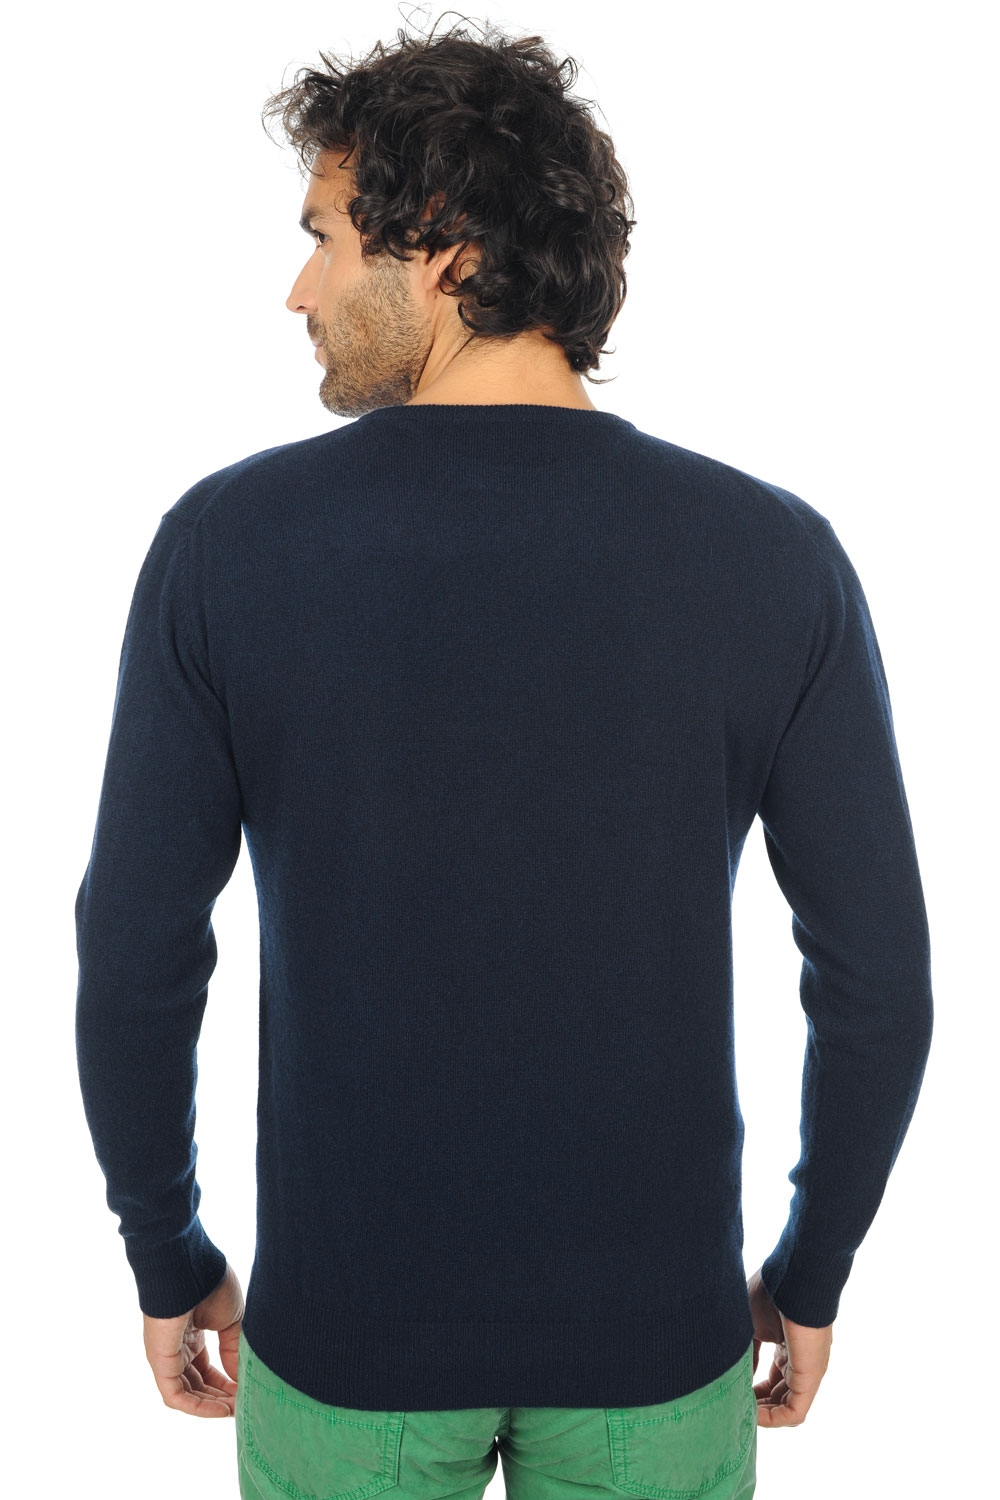 Cachemire pull homme col rond santa cruz marine fonce m